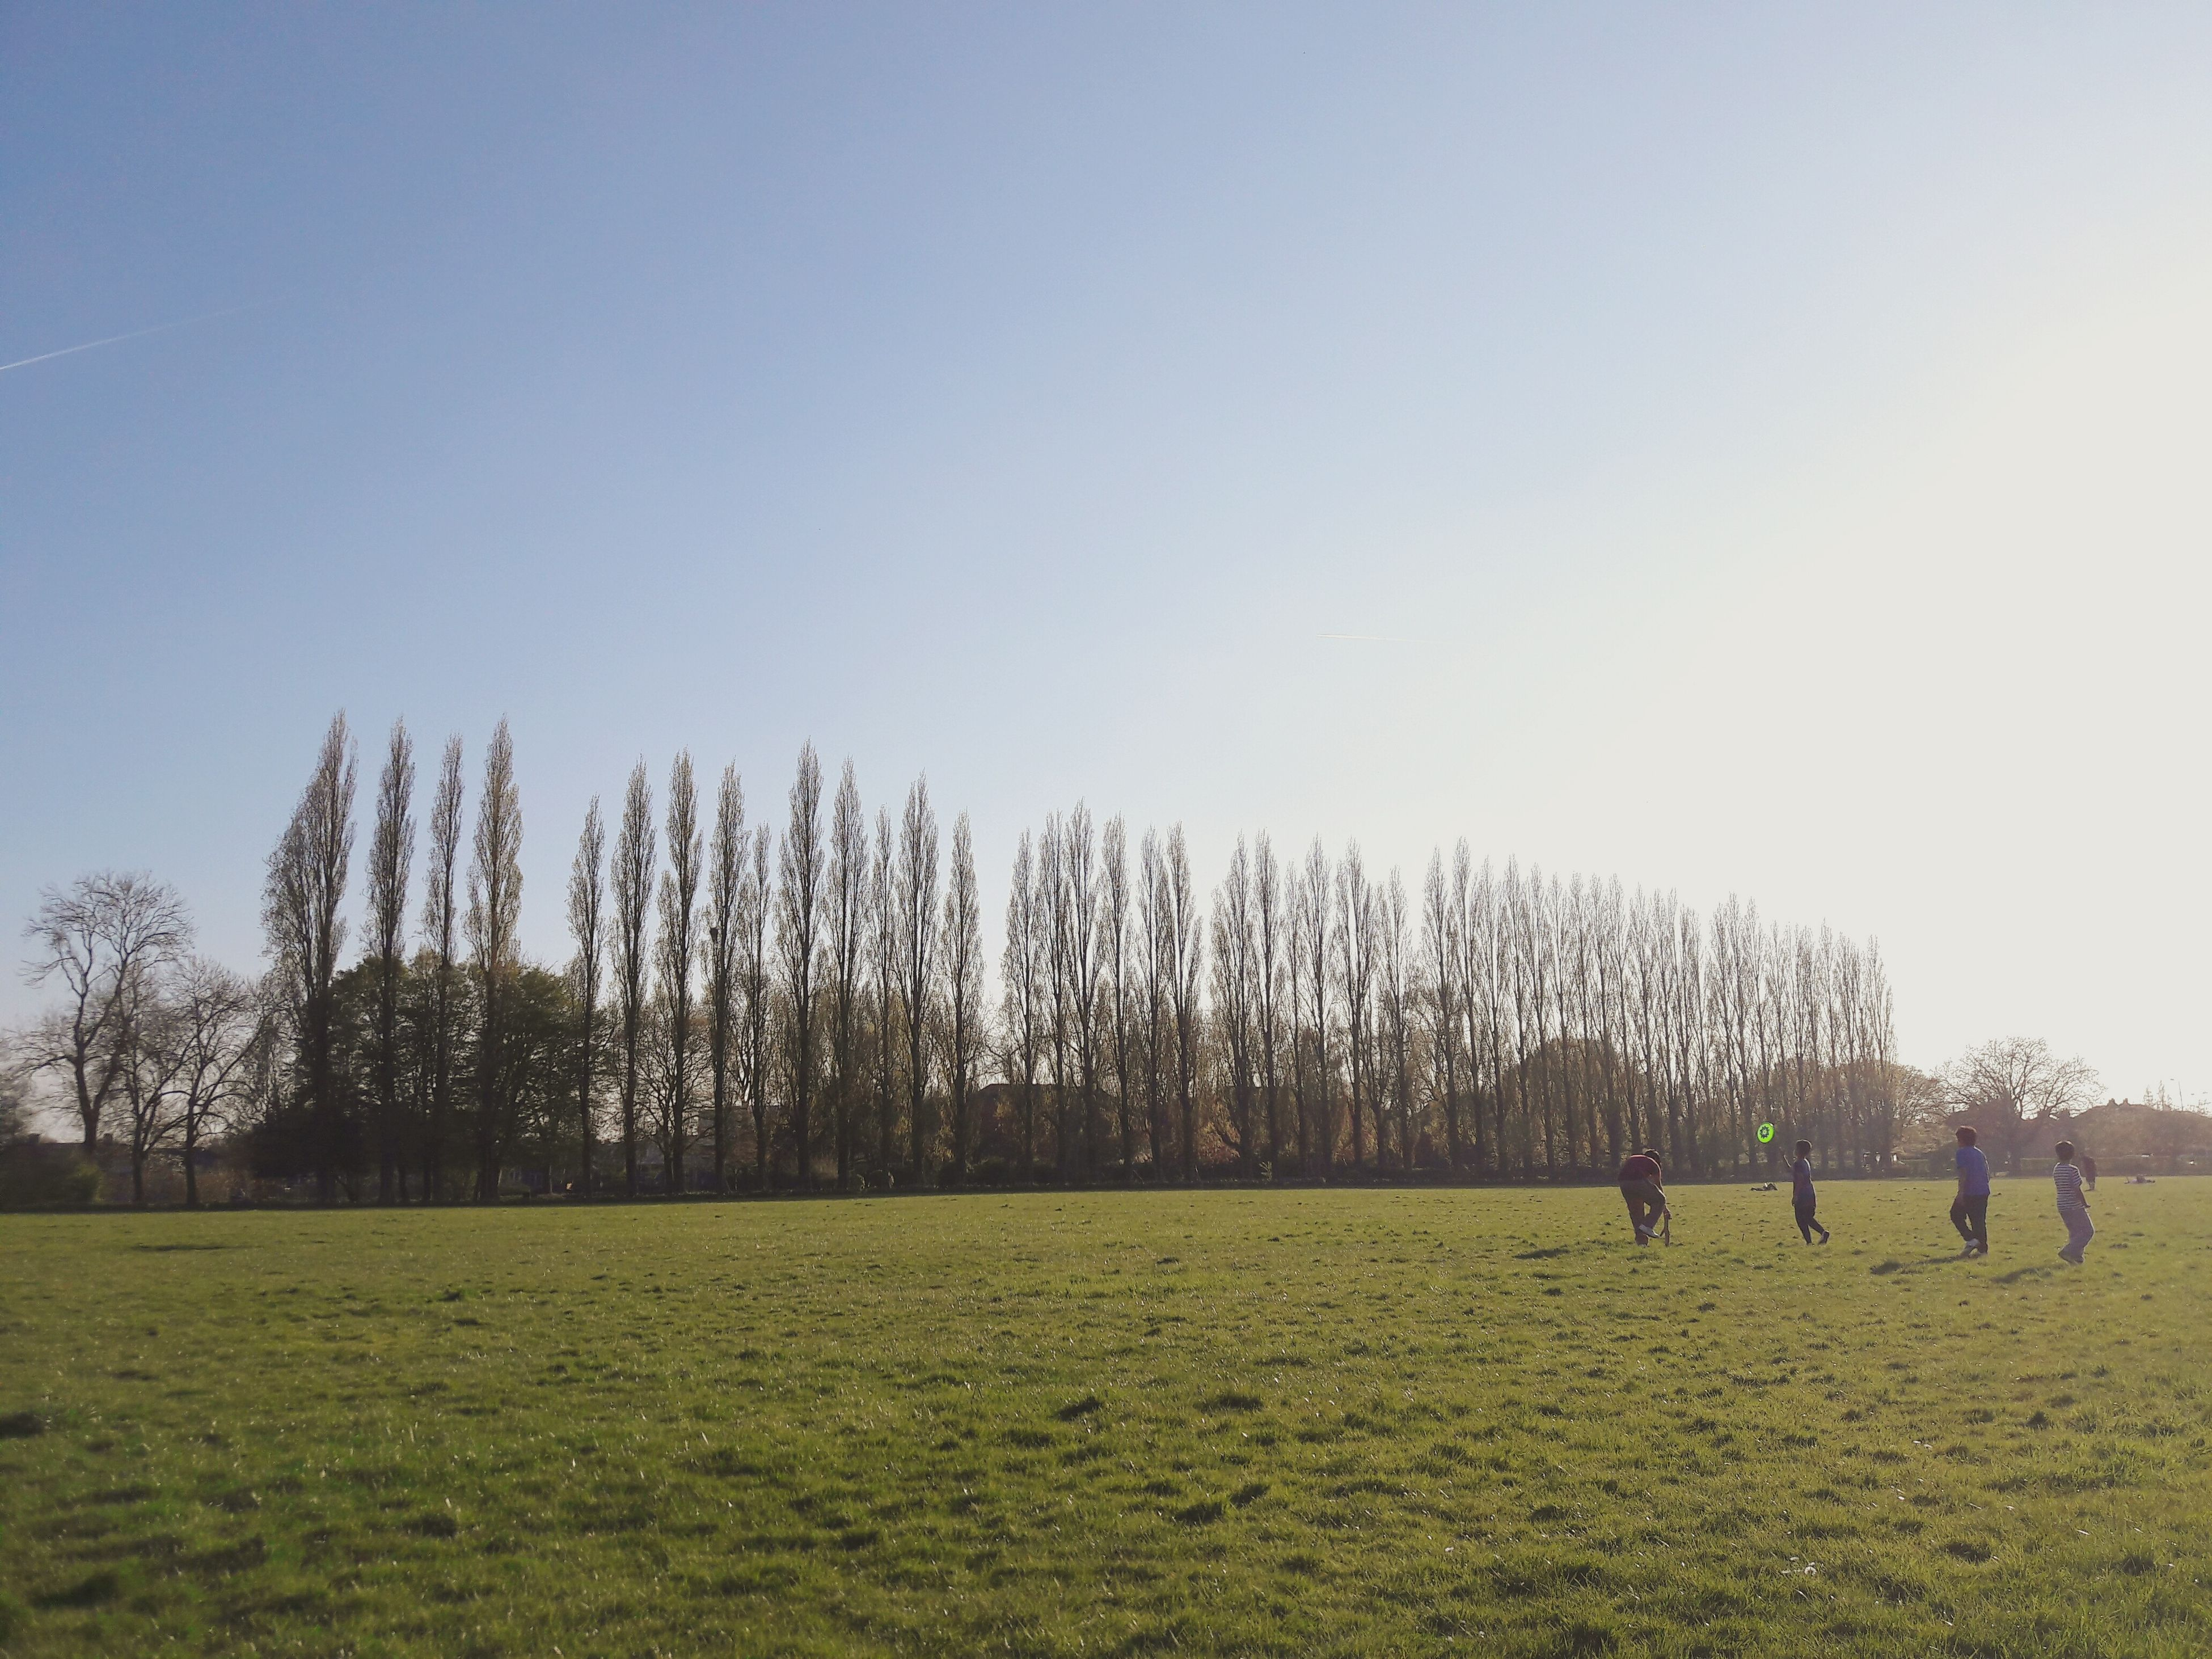 grass, tree, field, nature, clear sky, real people, growth, green color, tranquility, tranquil scene, landscape, leisure activity, scenics, day, outdoors, beauty in nature, lifestyles, togetherness, men, playing, sky, people